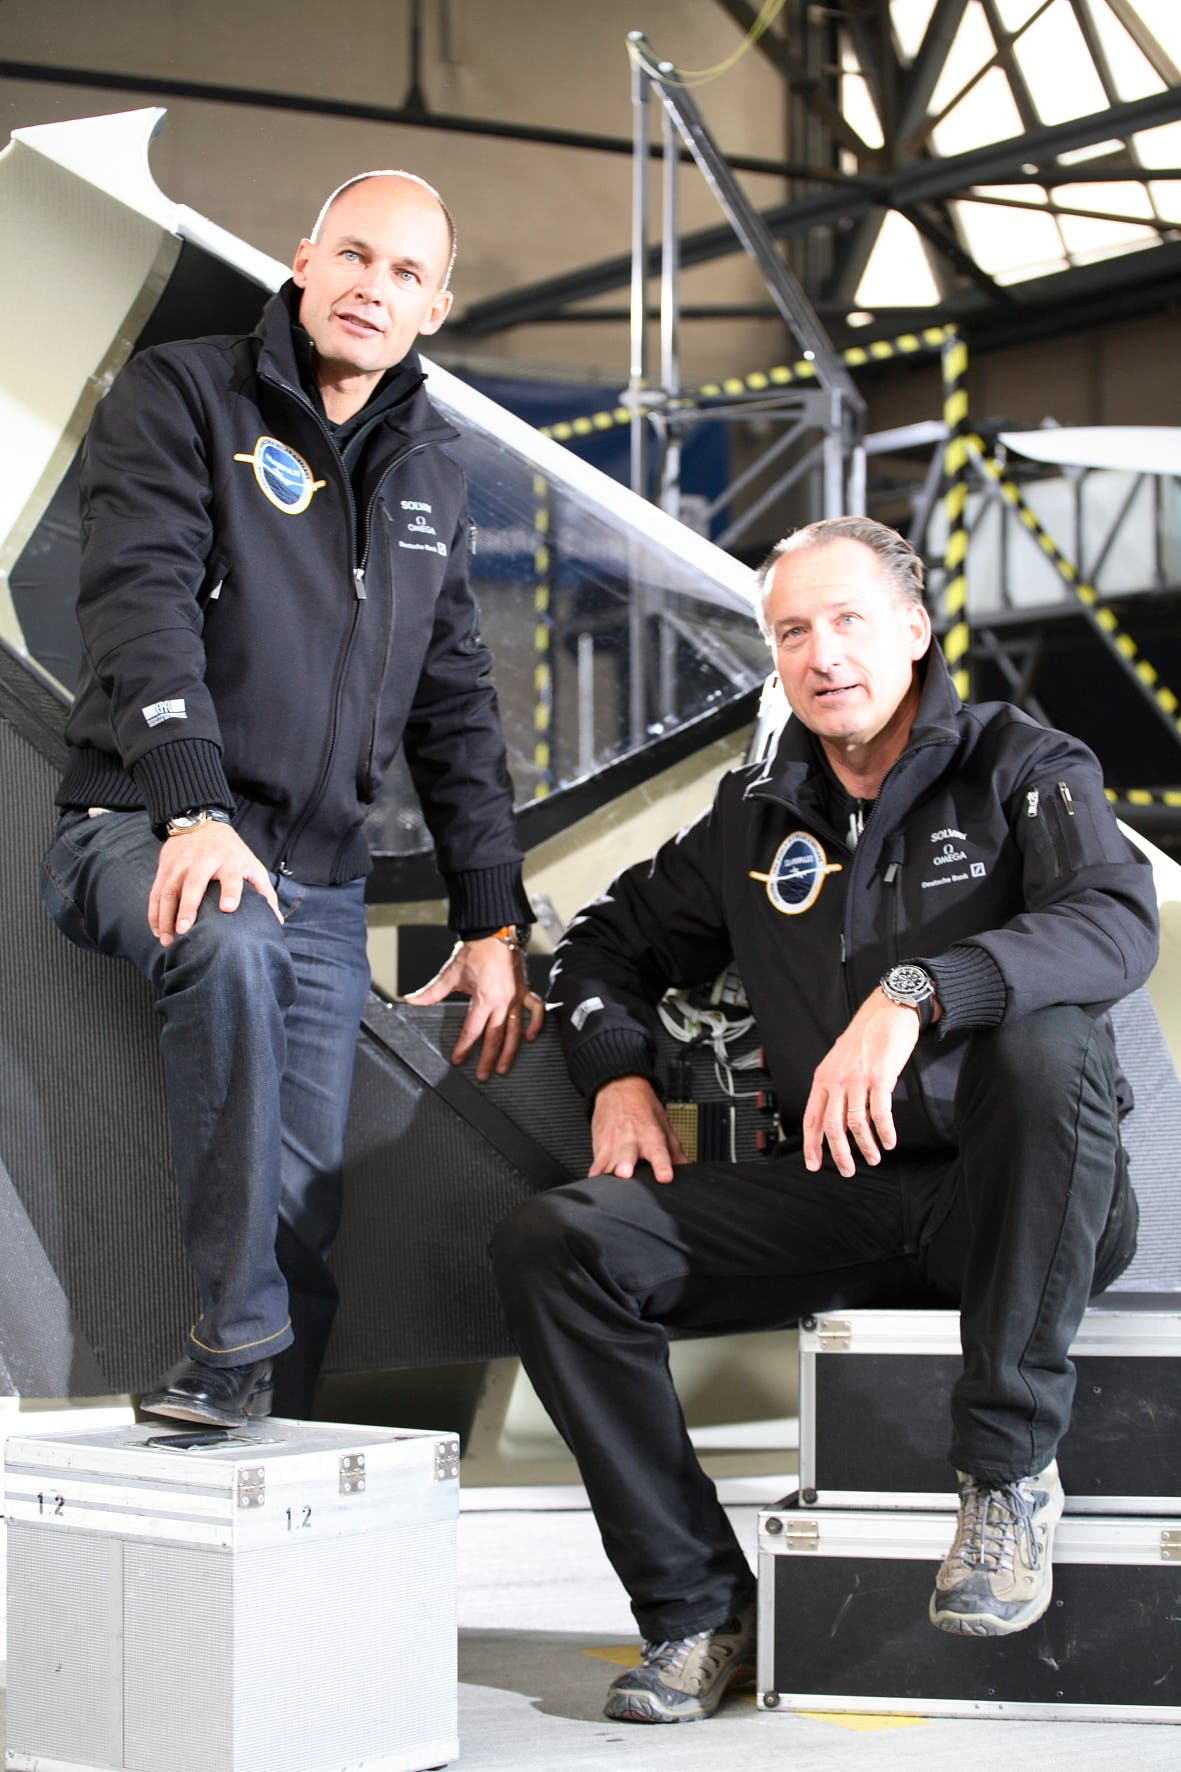 Bertrand Piccard and André Borschberg have been working on the project for 12 years. (Image courtesy: Solar Impulse)